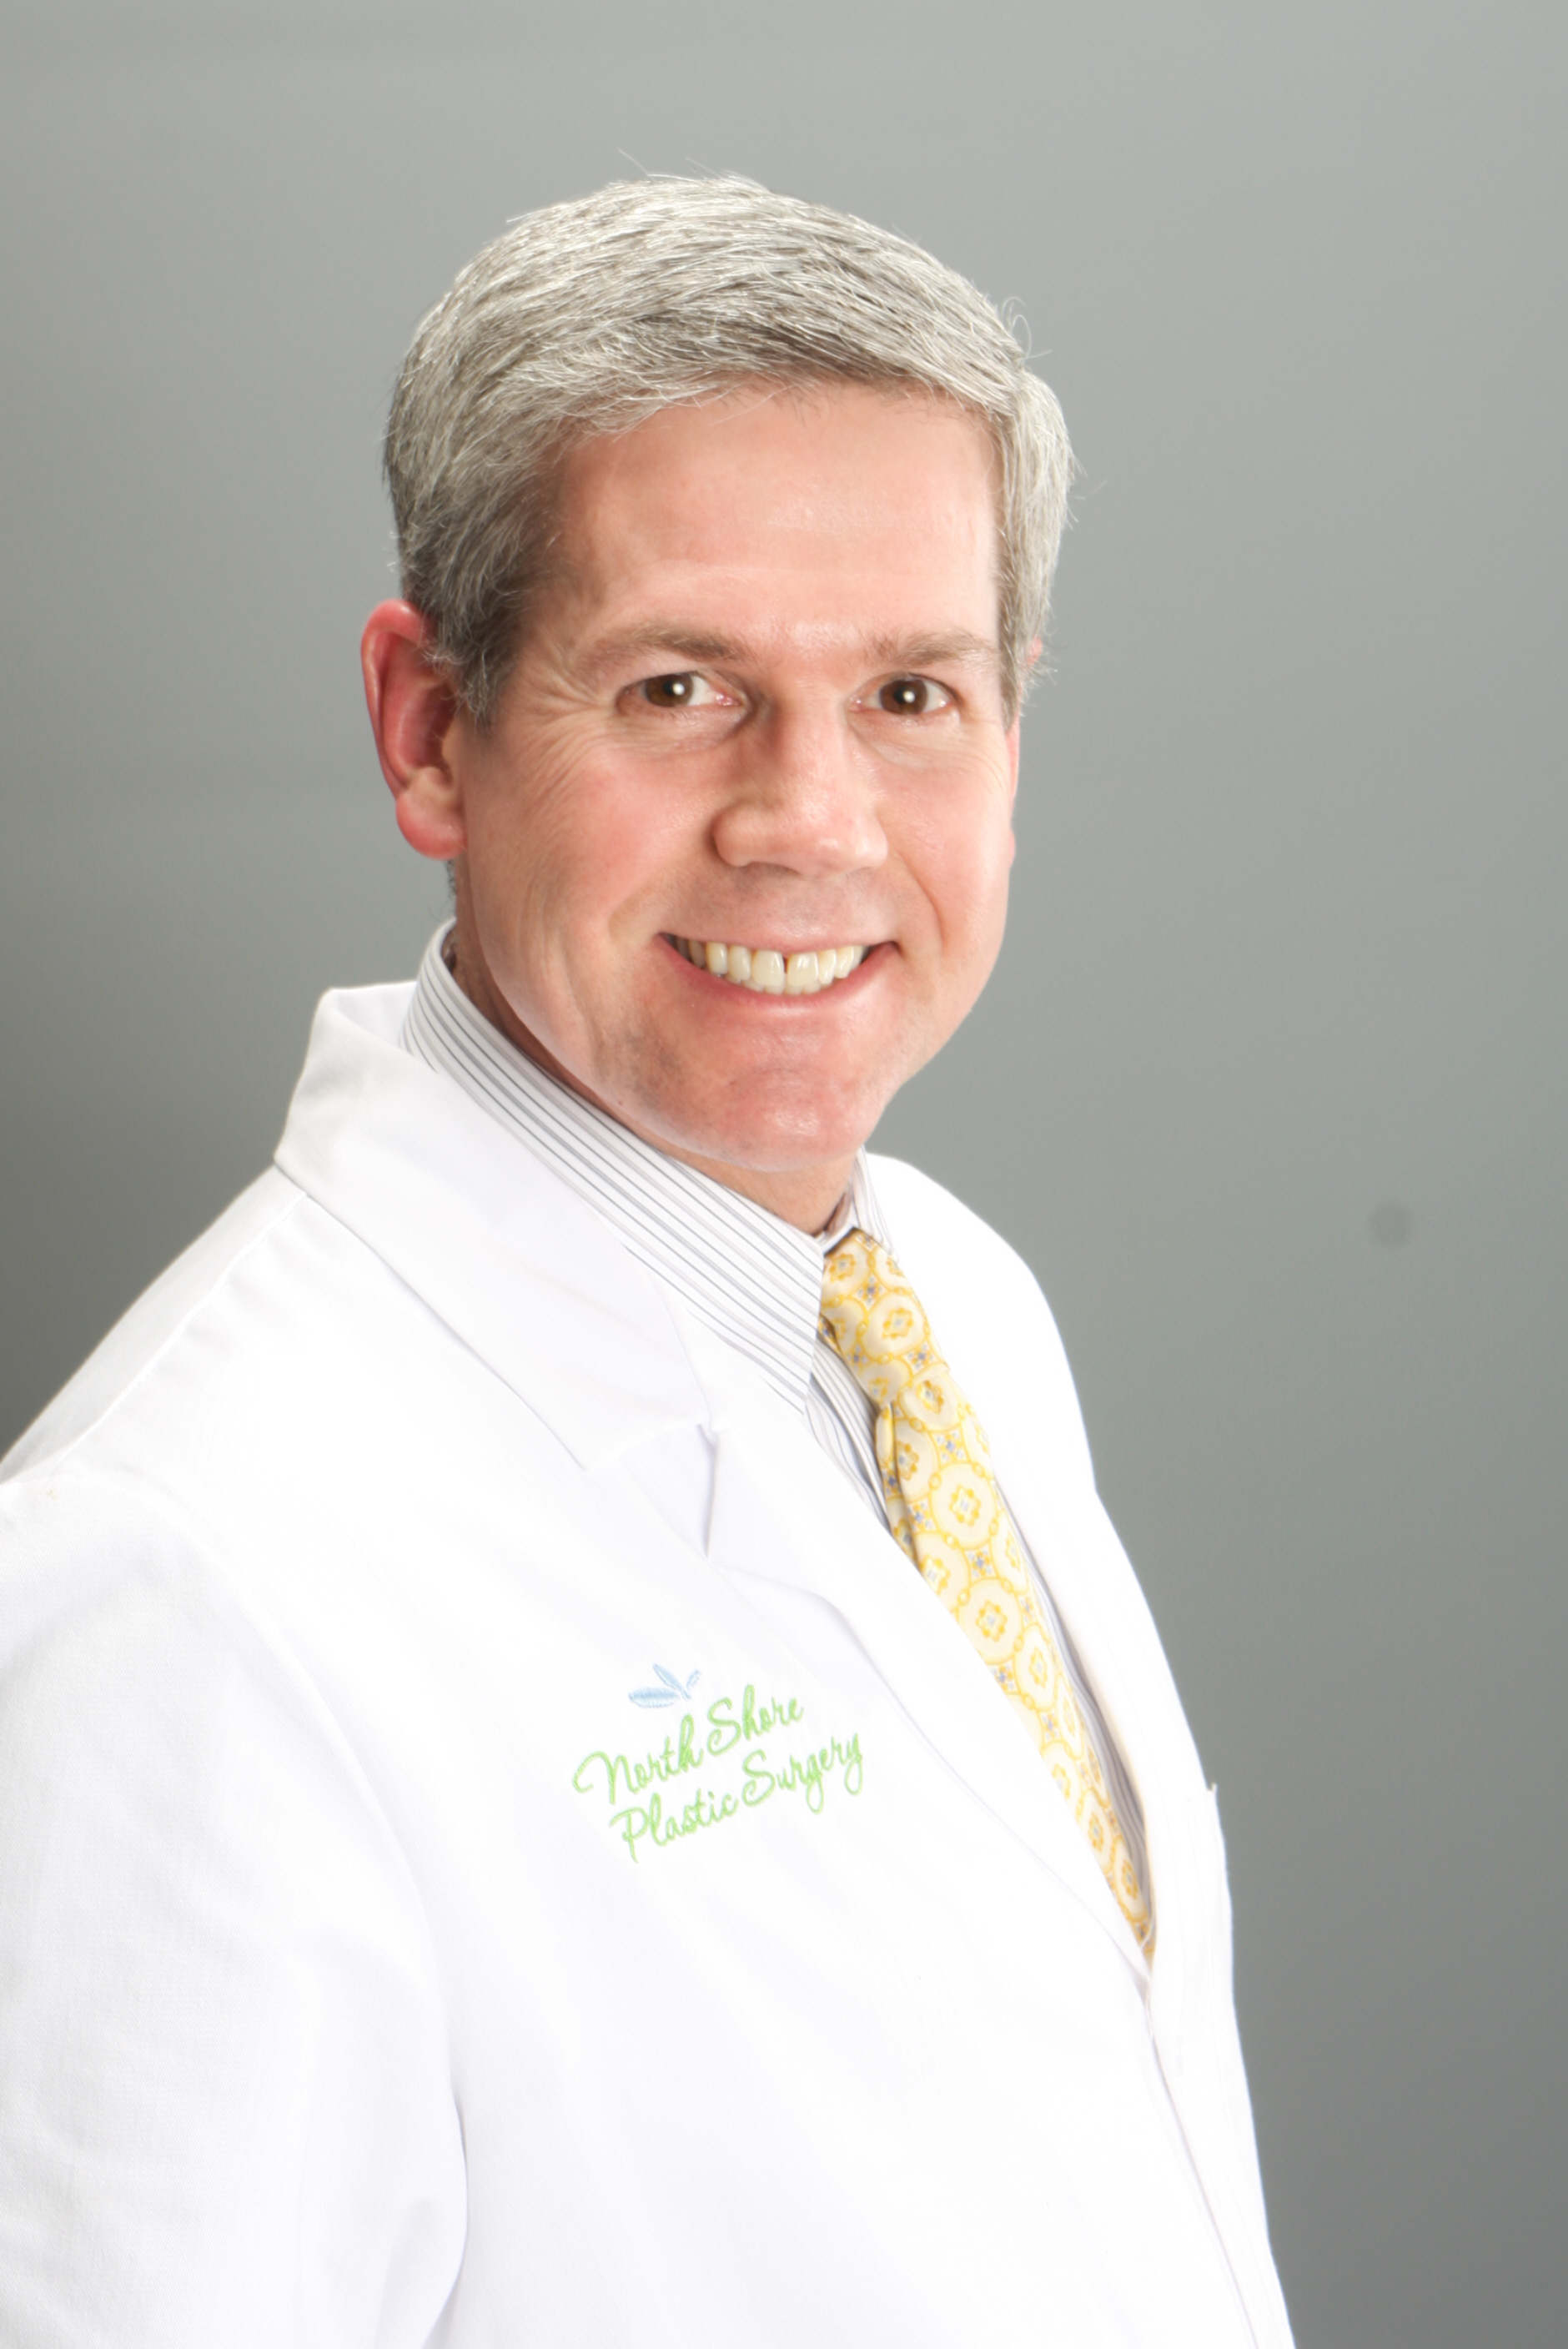 David Wages, MD